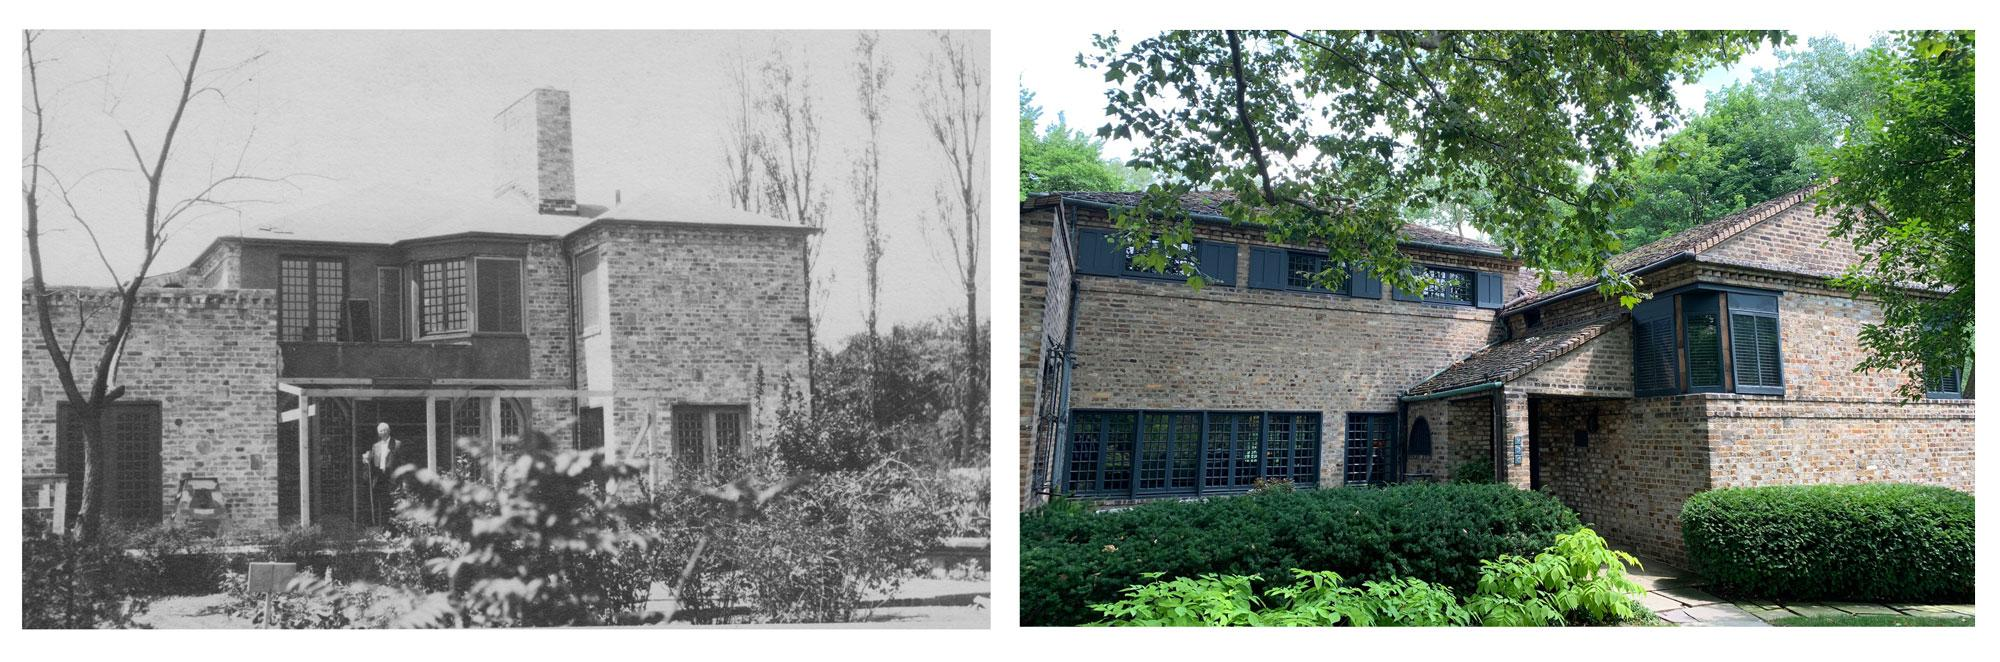 The Stratton house in an archival photo, left, and today, right.Pat Batcheller